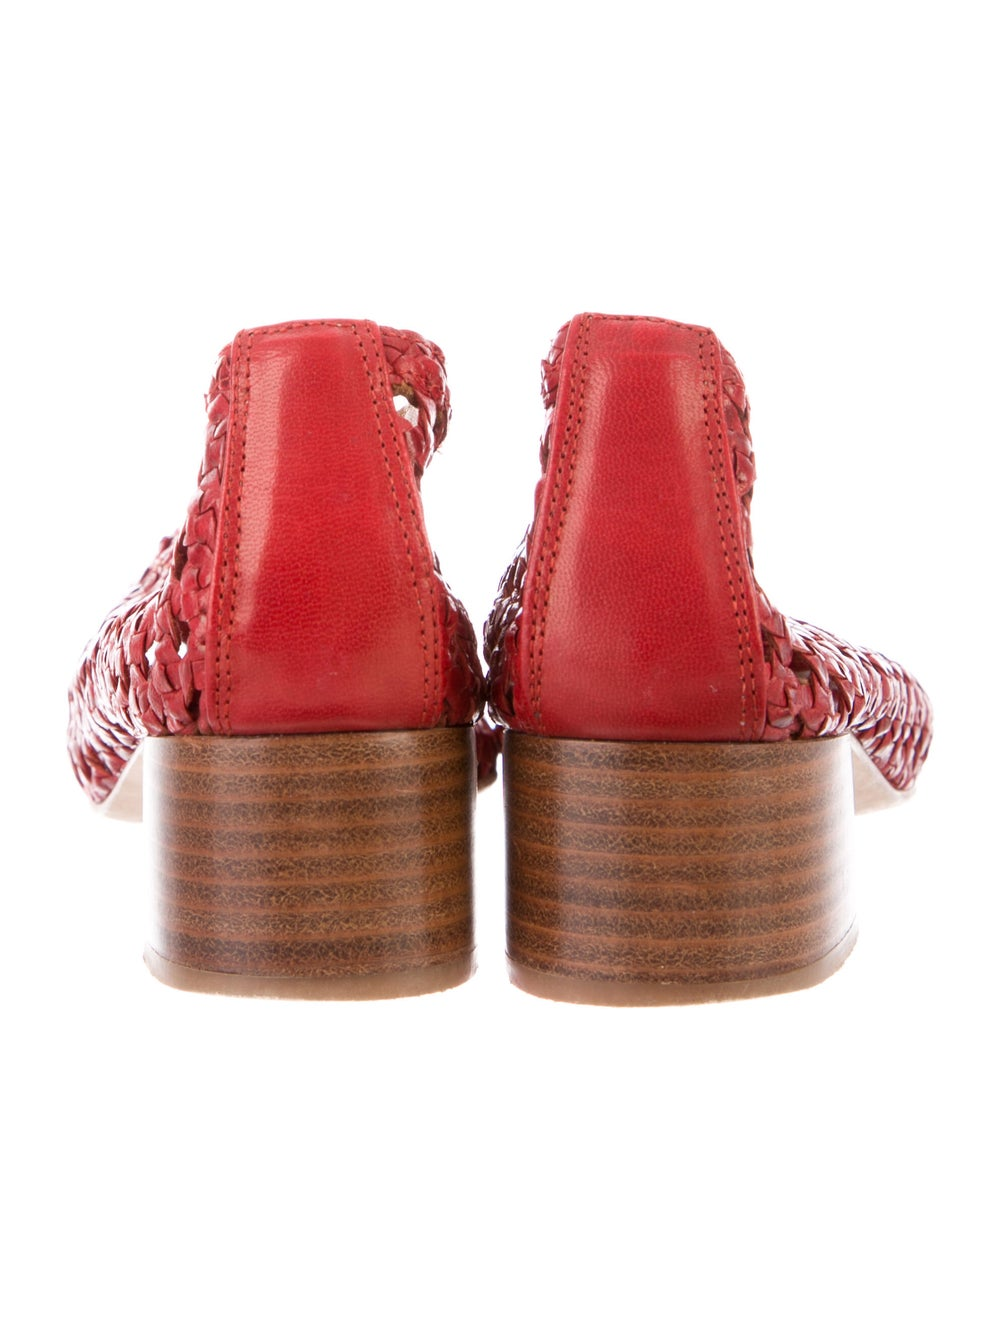 Miista Leather Flats Red - image 4